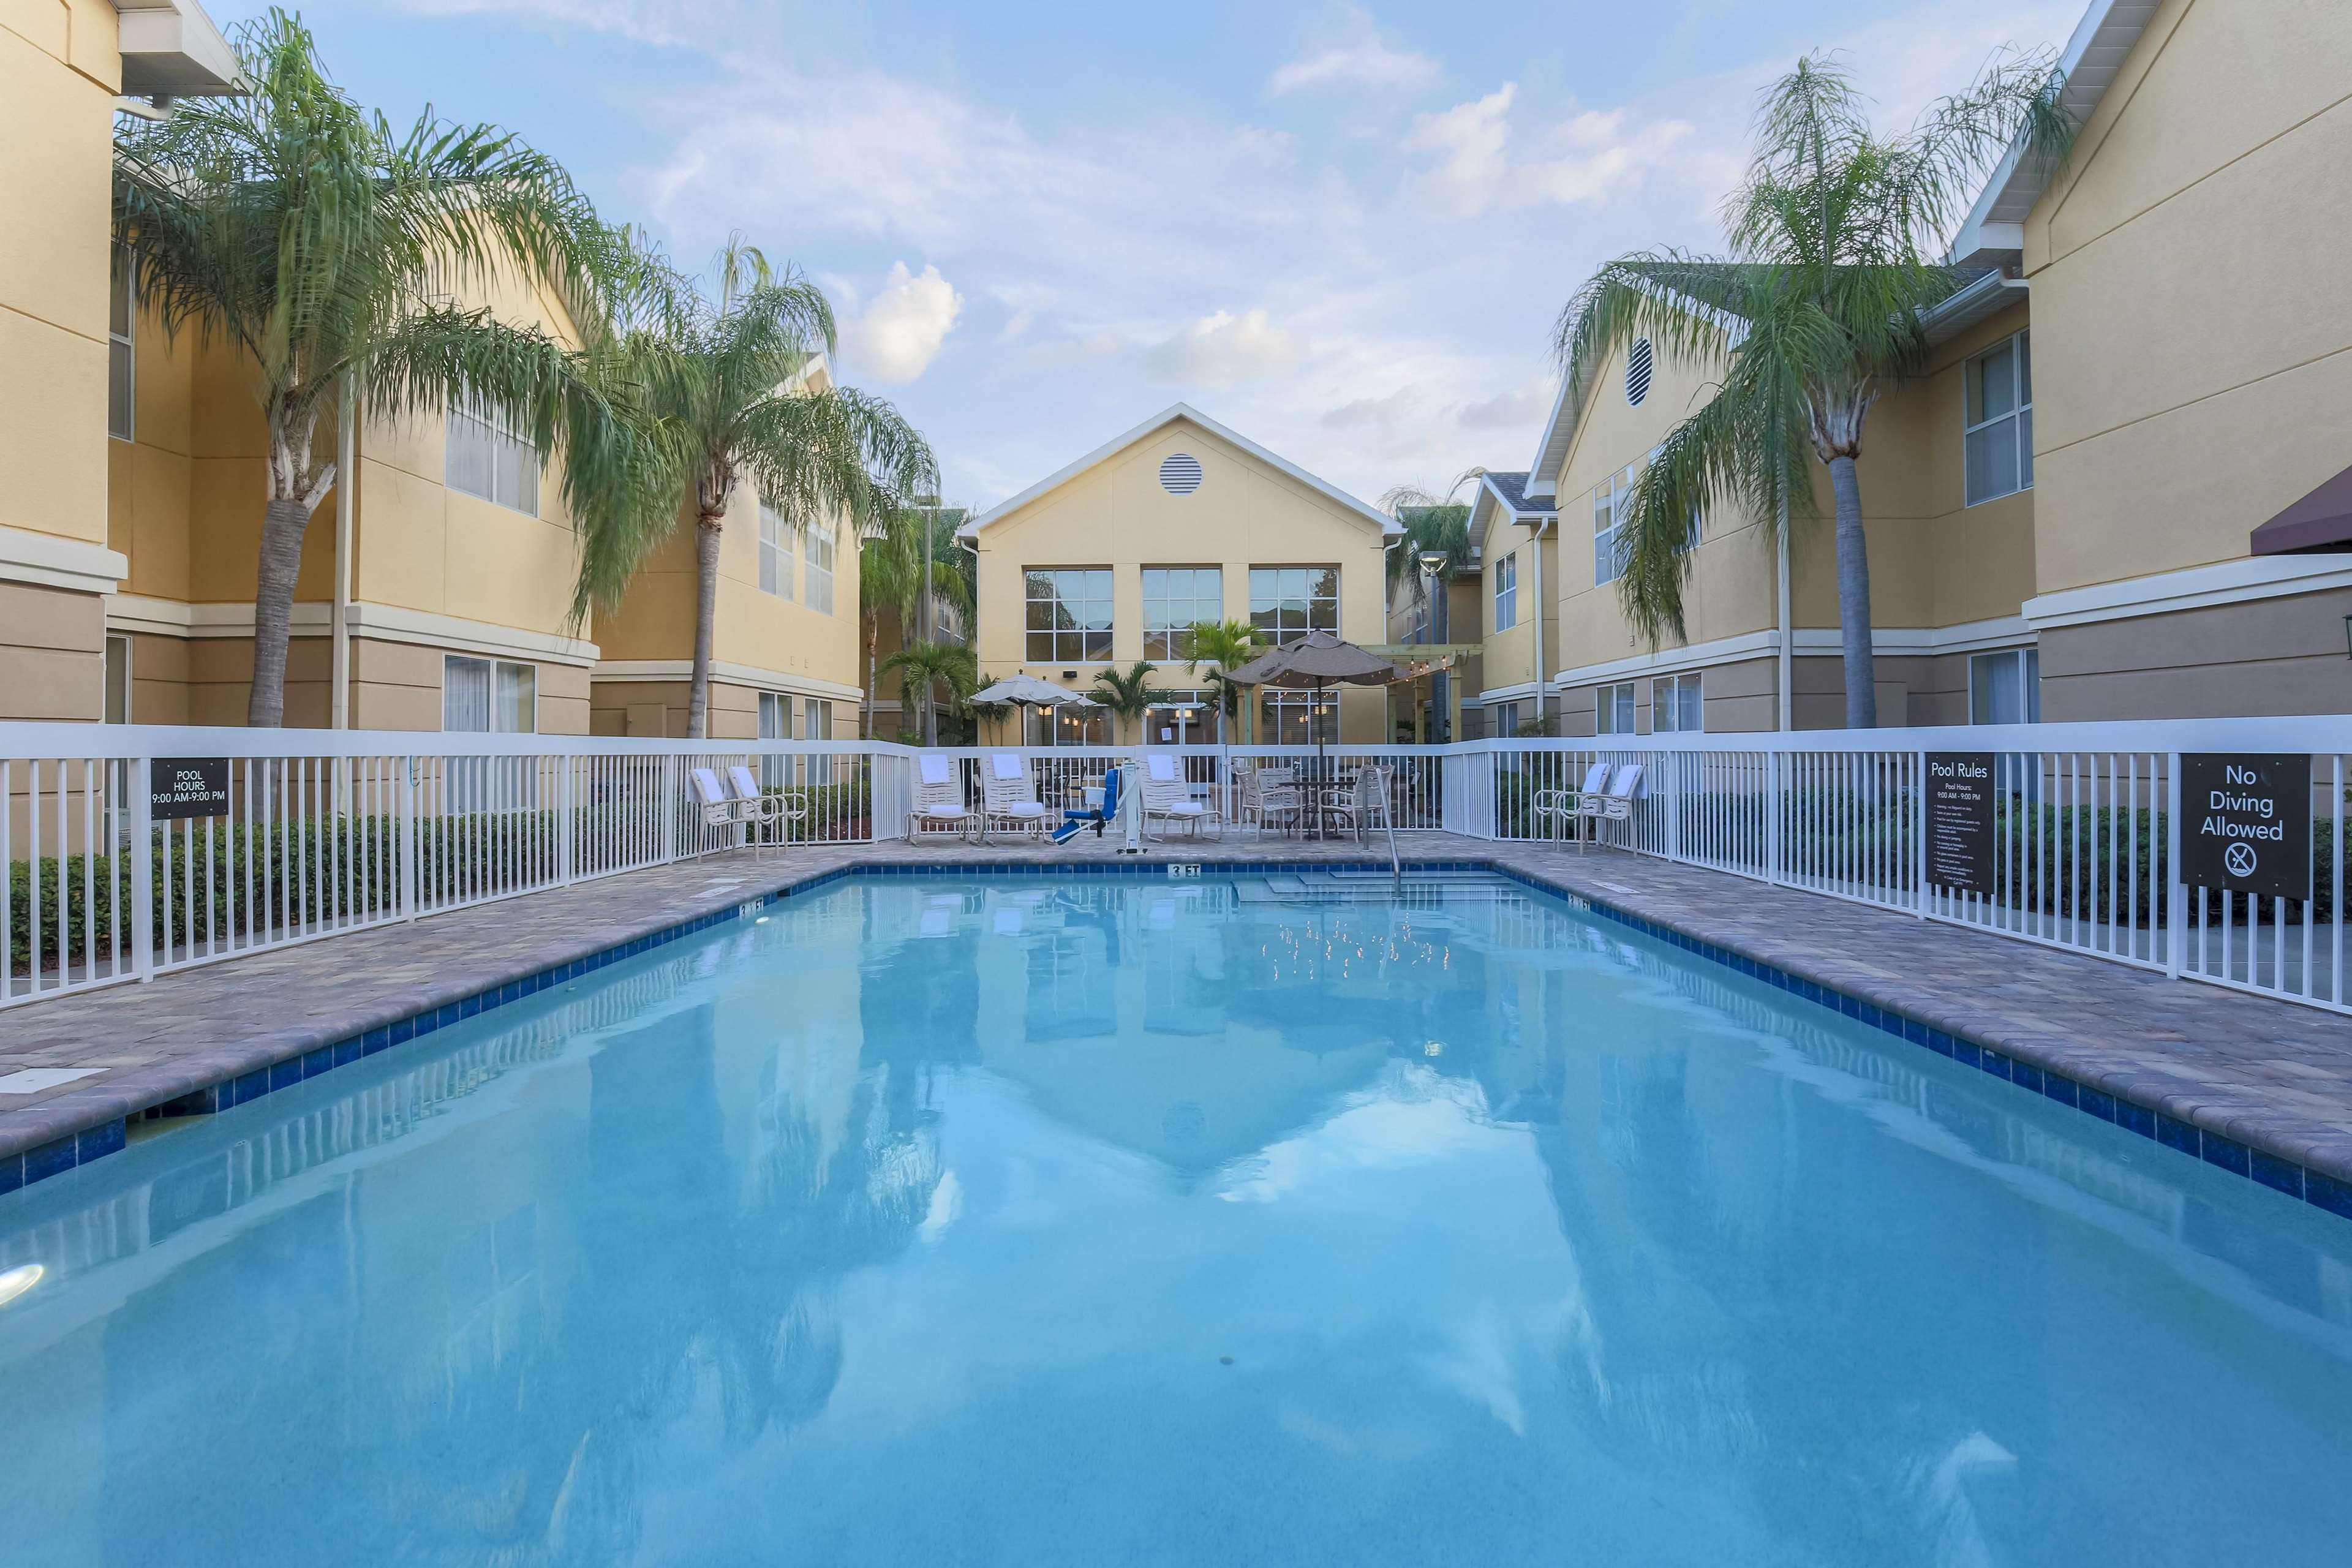 Homewood Suites by Hilton St. Petersburg Clearwater image 11